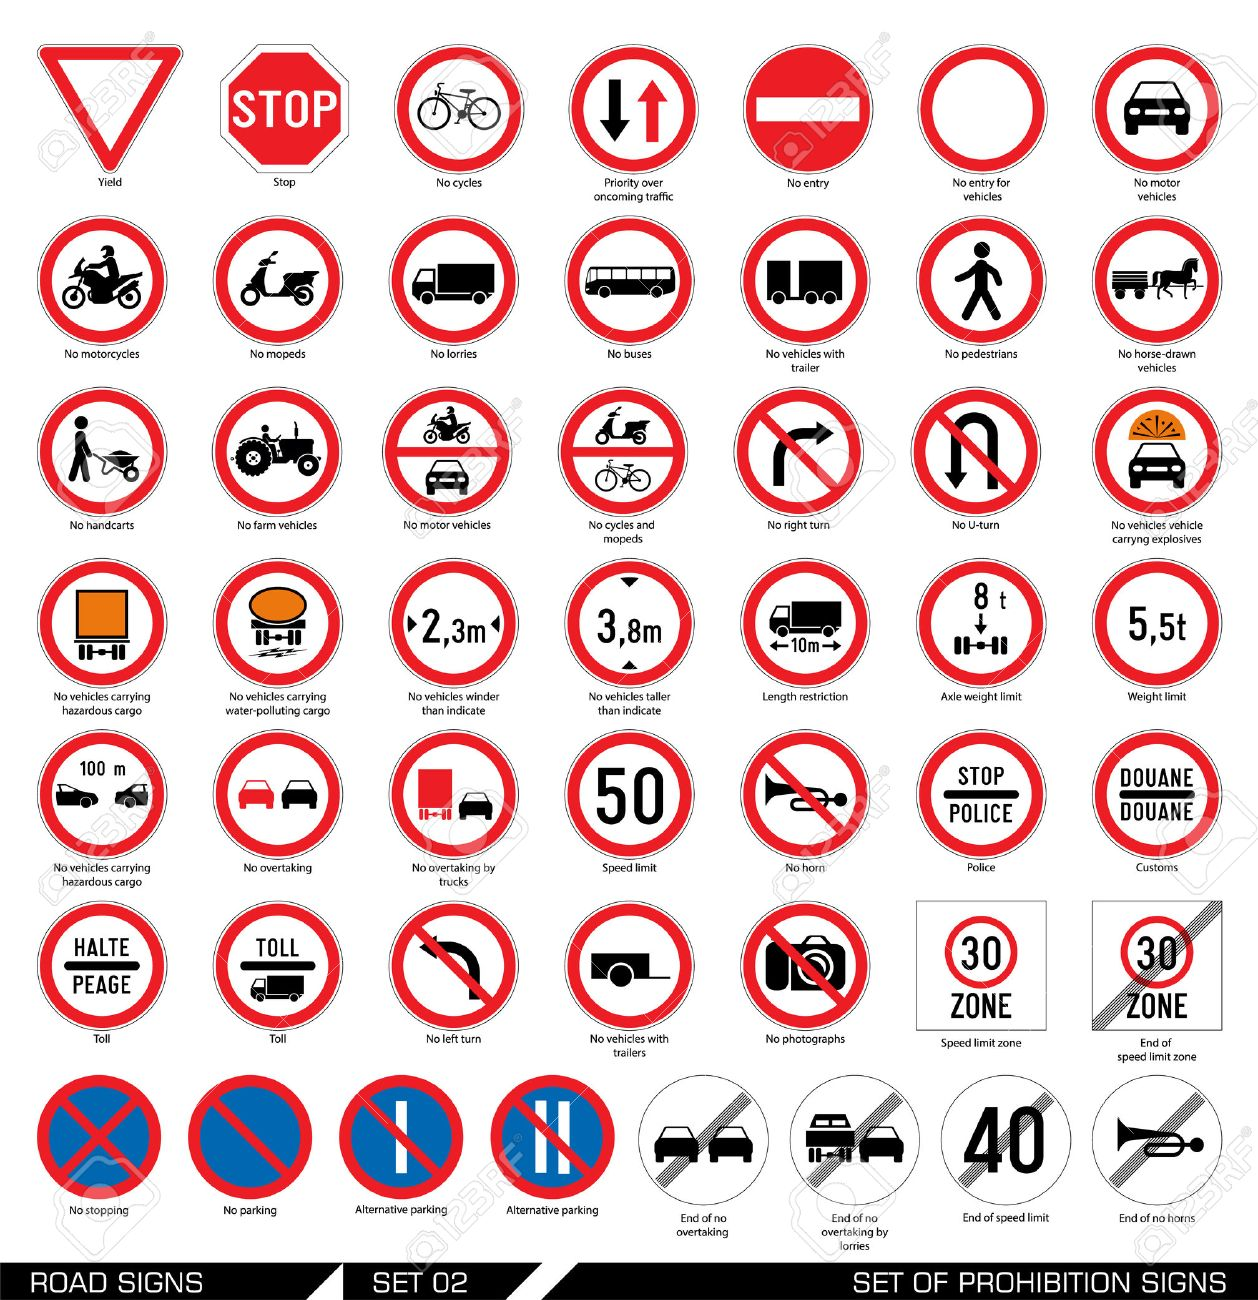 Road signs stock photos royalty free business images collection of mandatory and prohibition traffic signs vector illustration illustration biocorpaavc